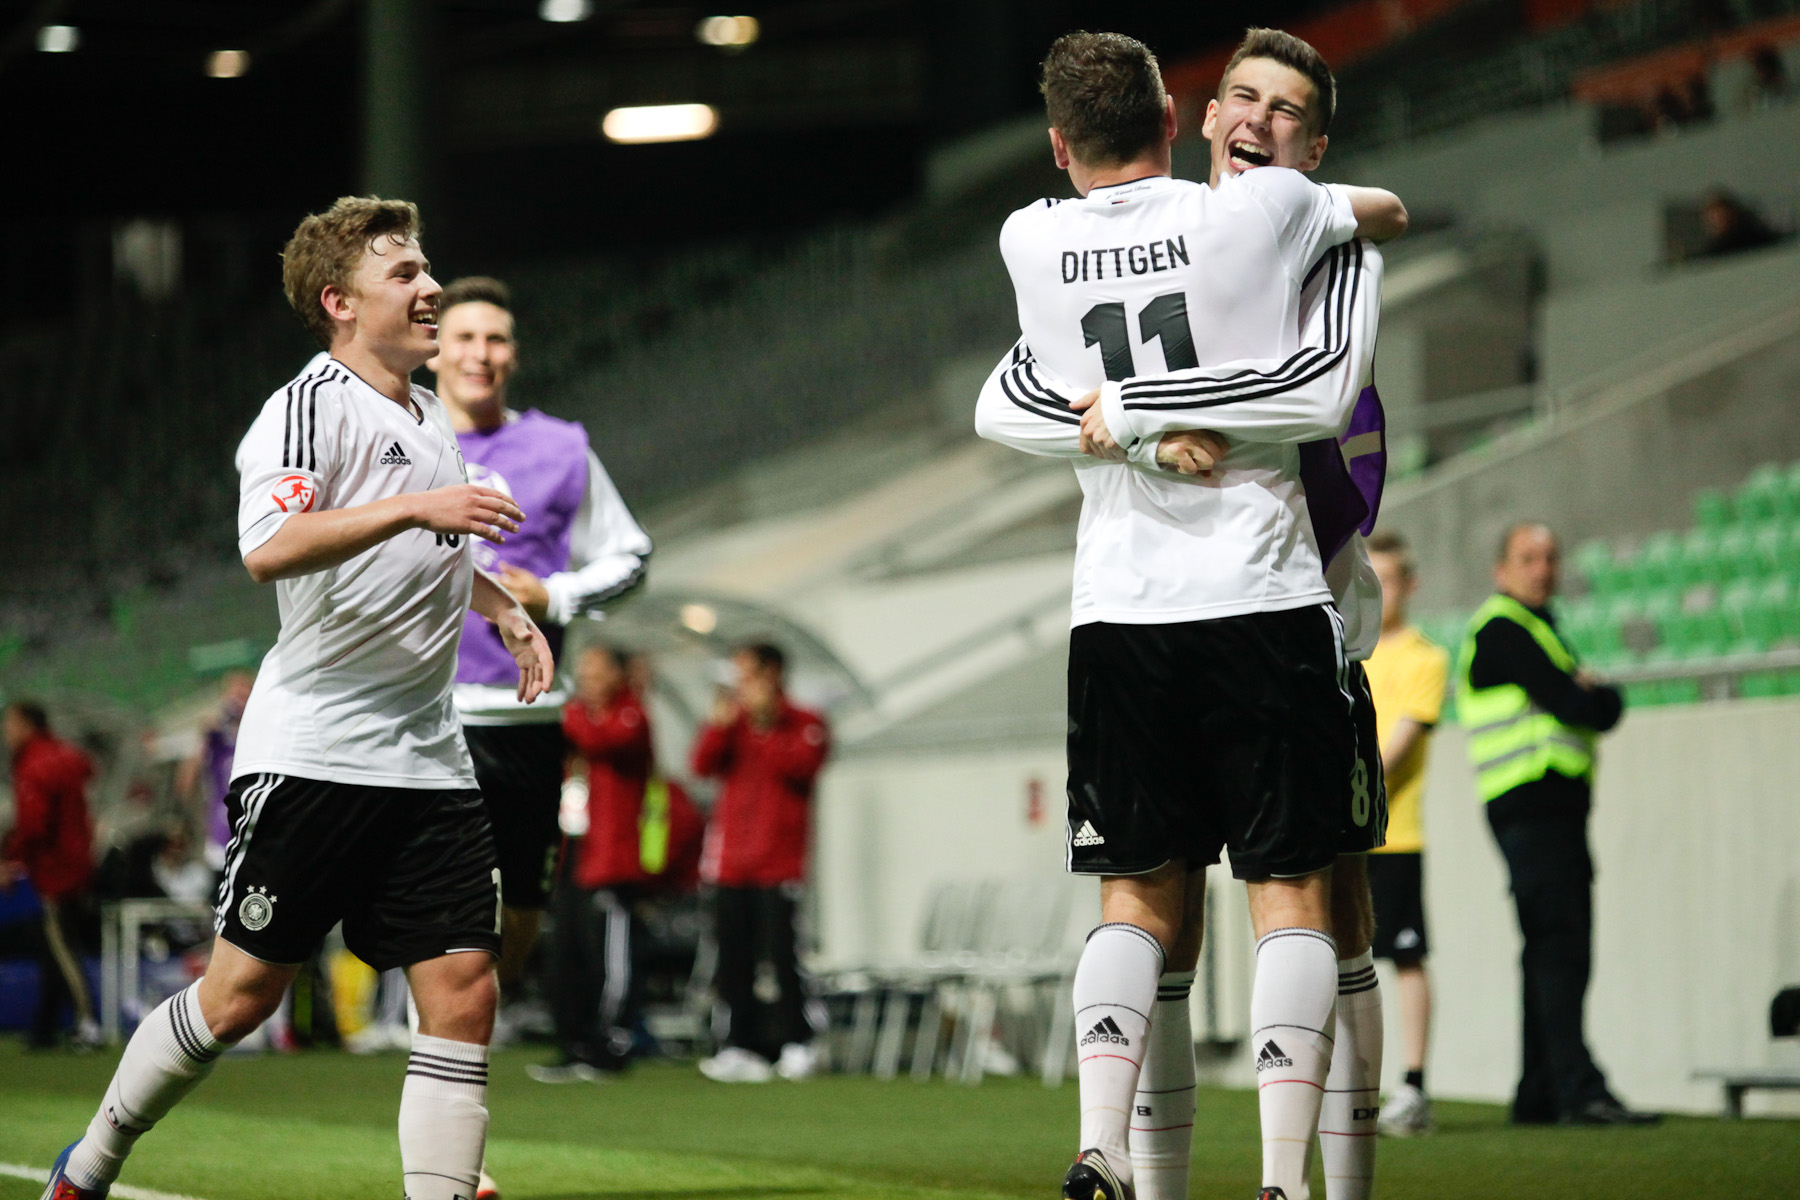 Maximilian Dittgen of Germany celebrates with his team-mates after scoring a goal during the UEFA U-17 European Championship final tournament group match between Germany and France at the SRC Stozice Stadium in Ljubljana, Slovenia, May 10, 2012.